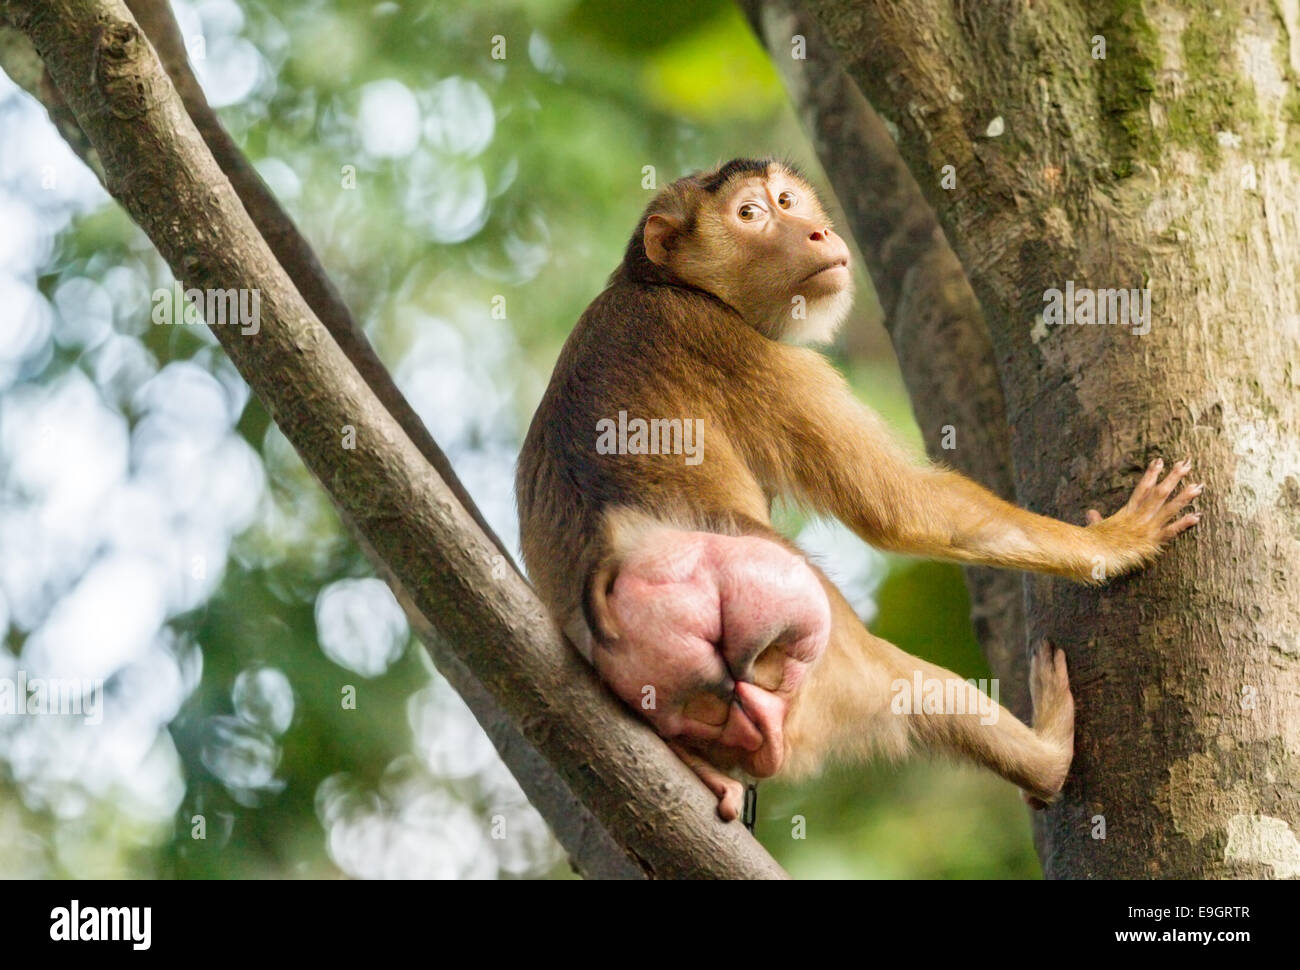 Female Southern Pig-tailed Macaque (Macaca nemestrina) in season as indicated by her swollen posterior. - Stock Image